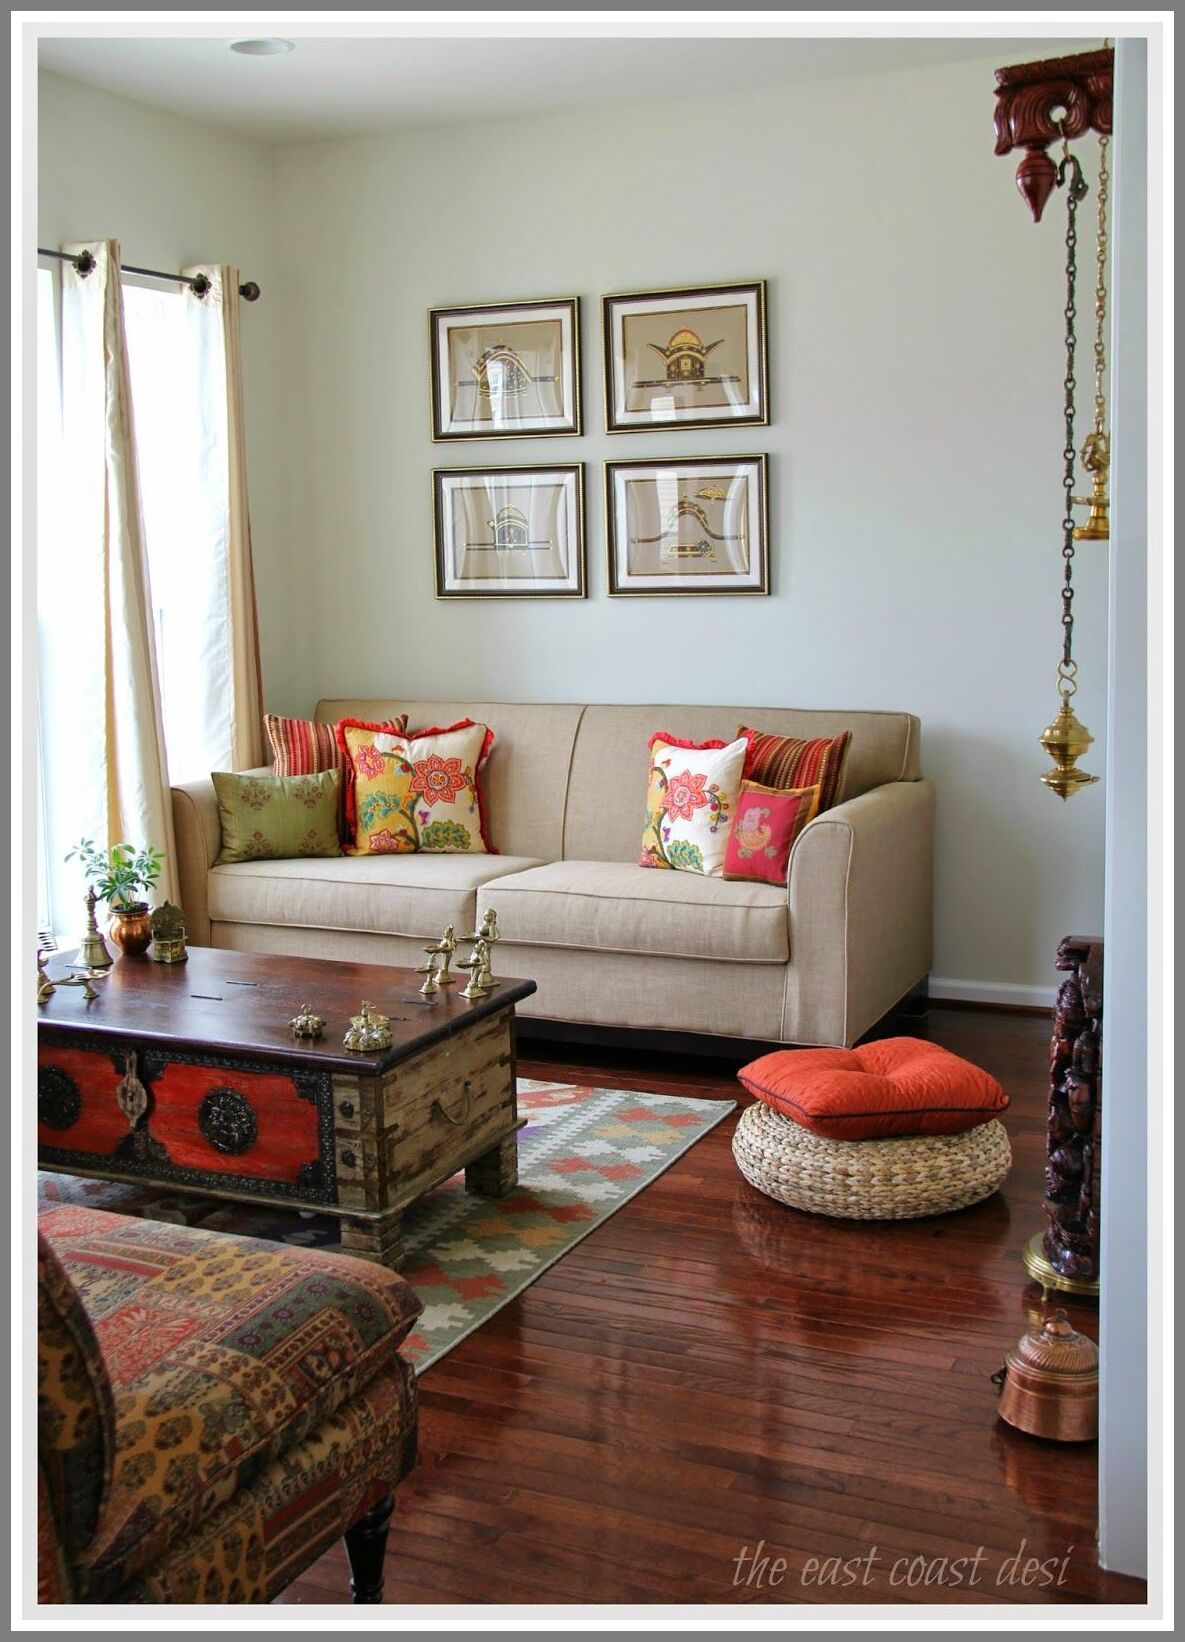 98 Reference Of Home Decor Ideas Living Room India In 2020